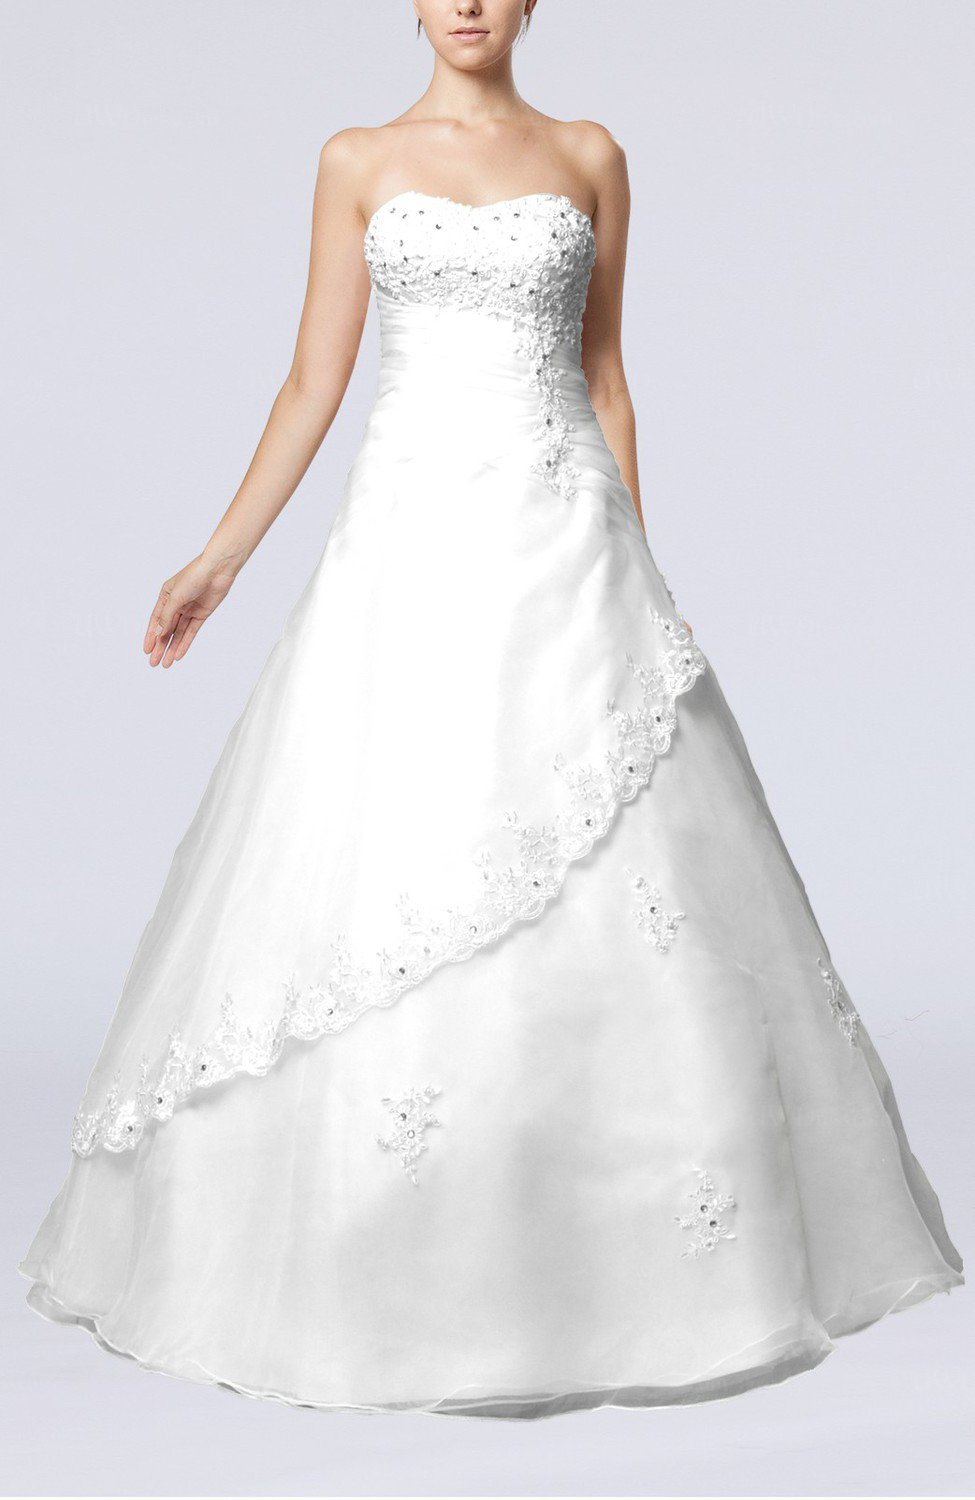 Cinderella Wedding And Evening Gowns : White cinderella hall sleeveless backless organza sequin bridal gowns